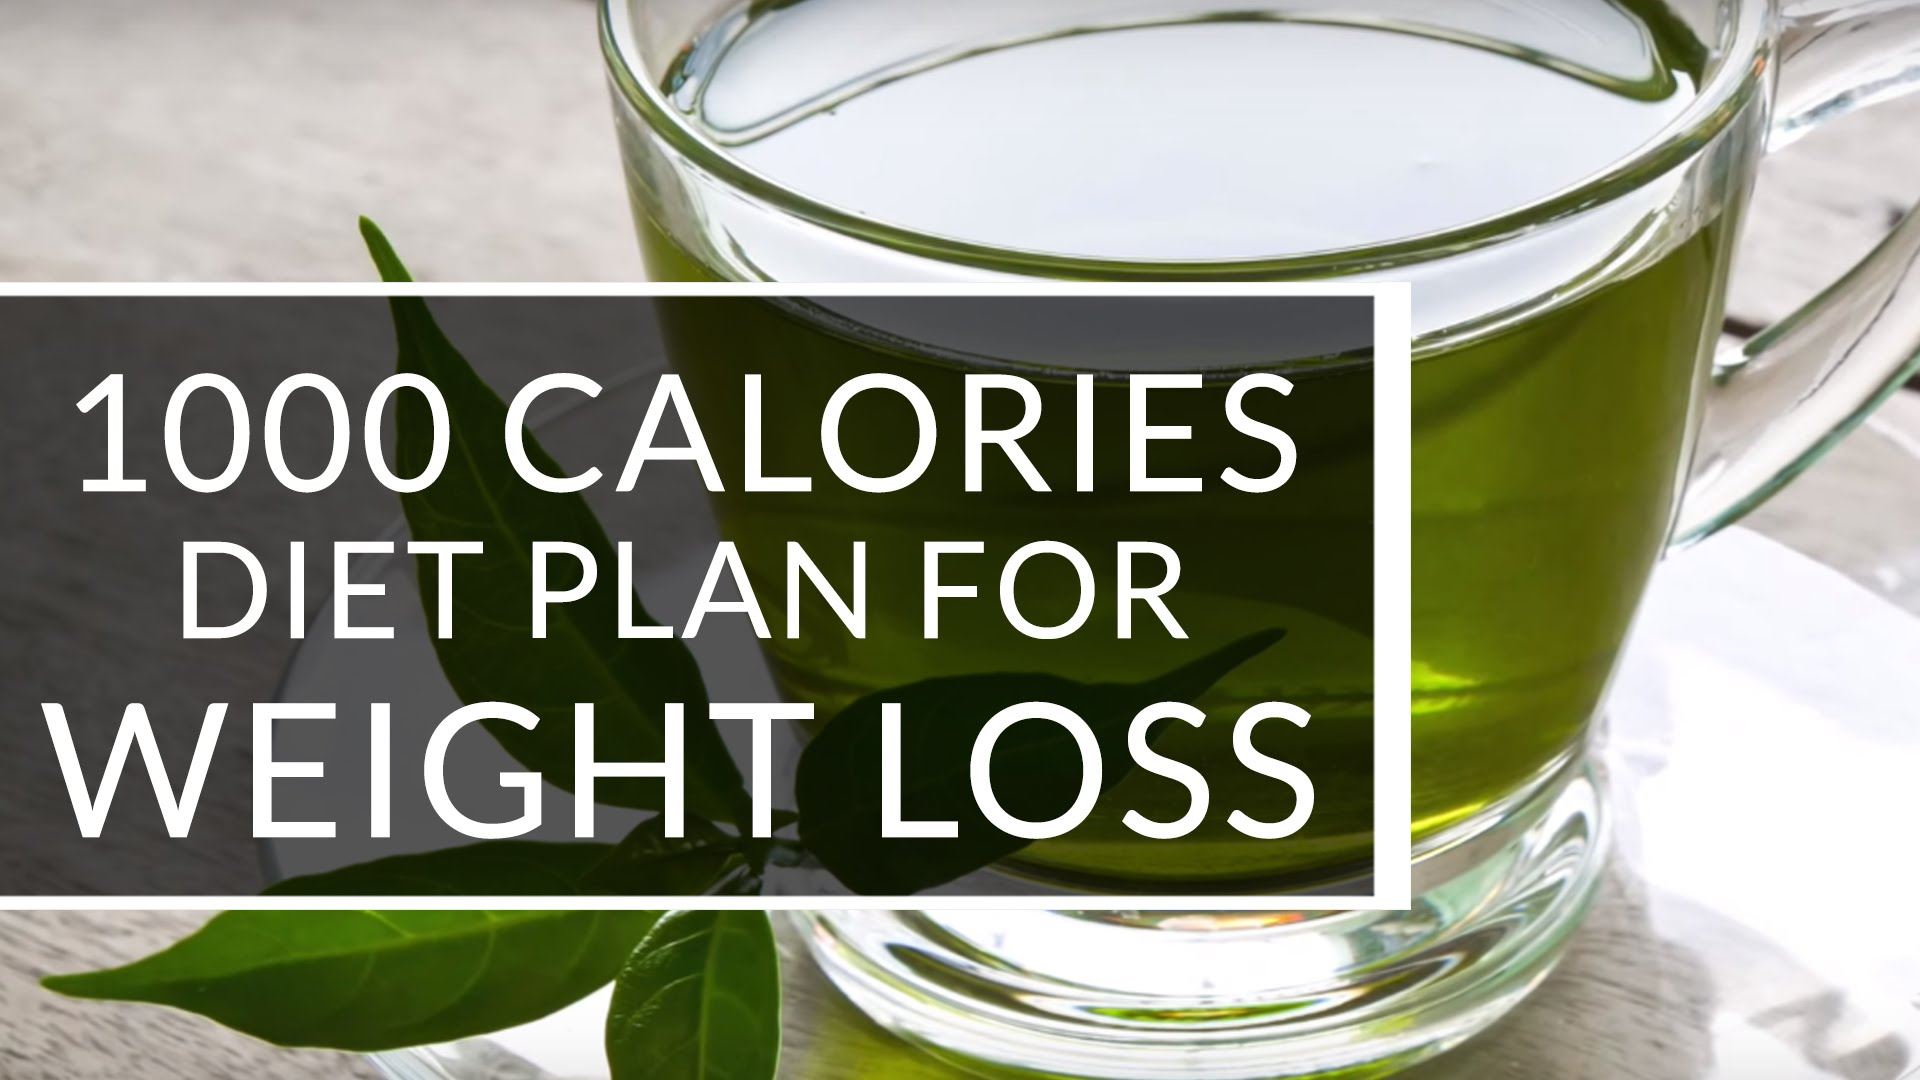 Top 10 Nutrition diet plan for weight loss